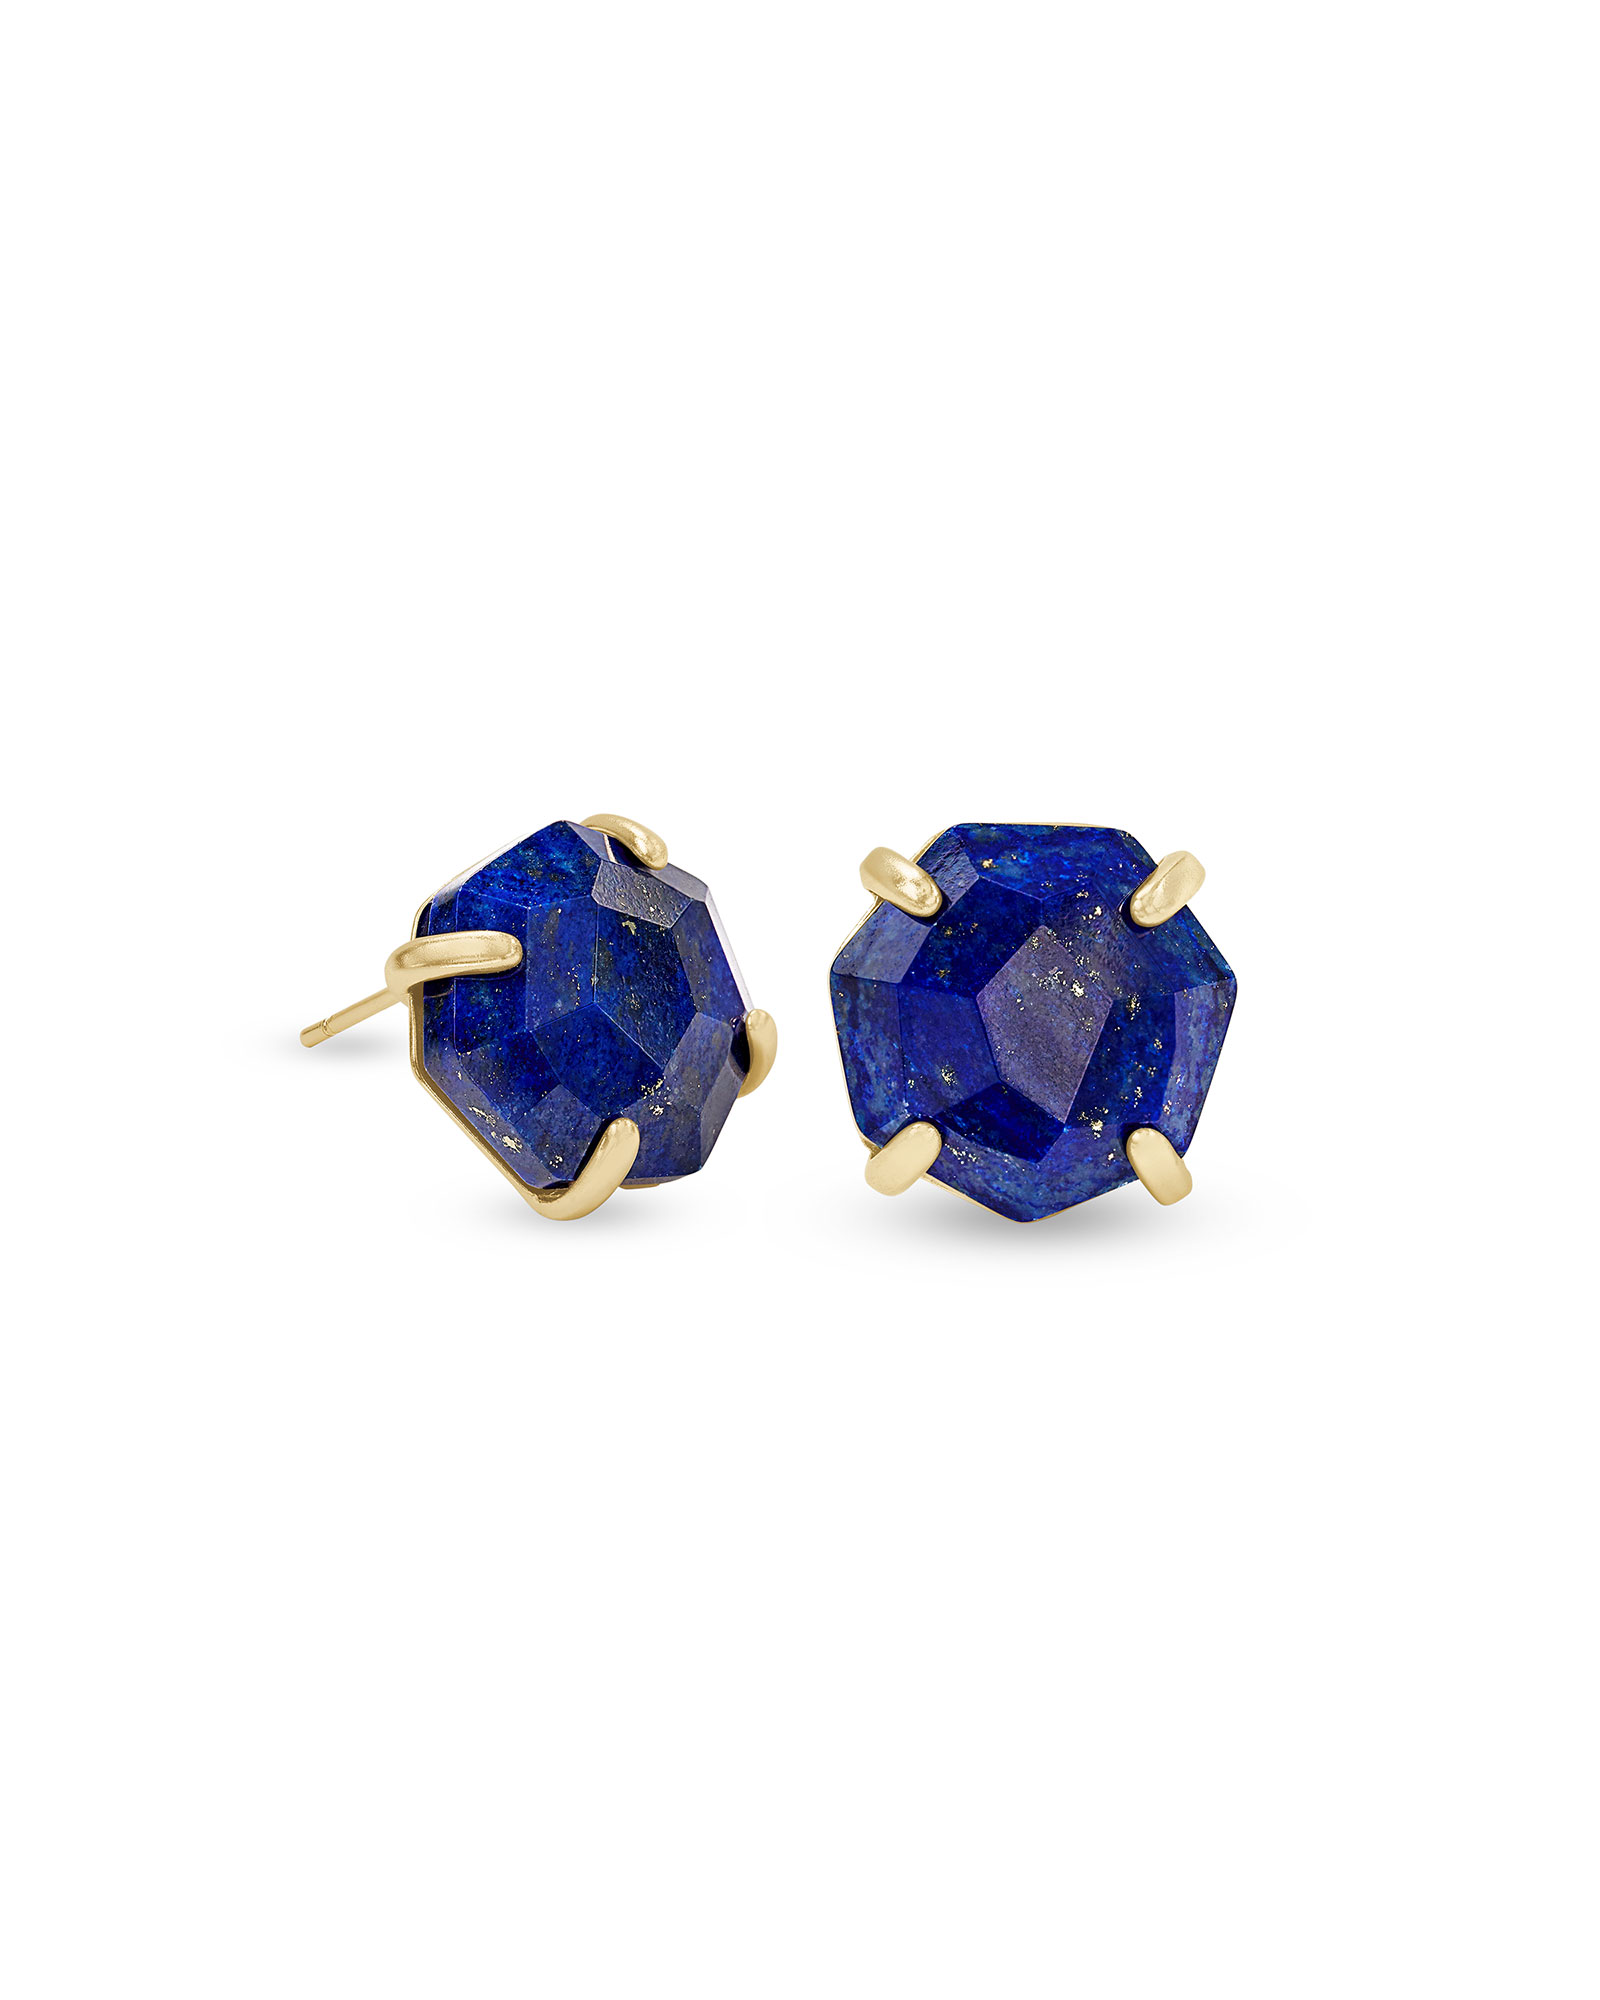 Ryan Gold Stud Earrings in Blue Lapis